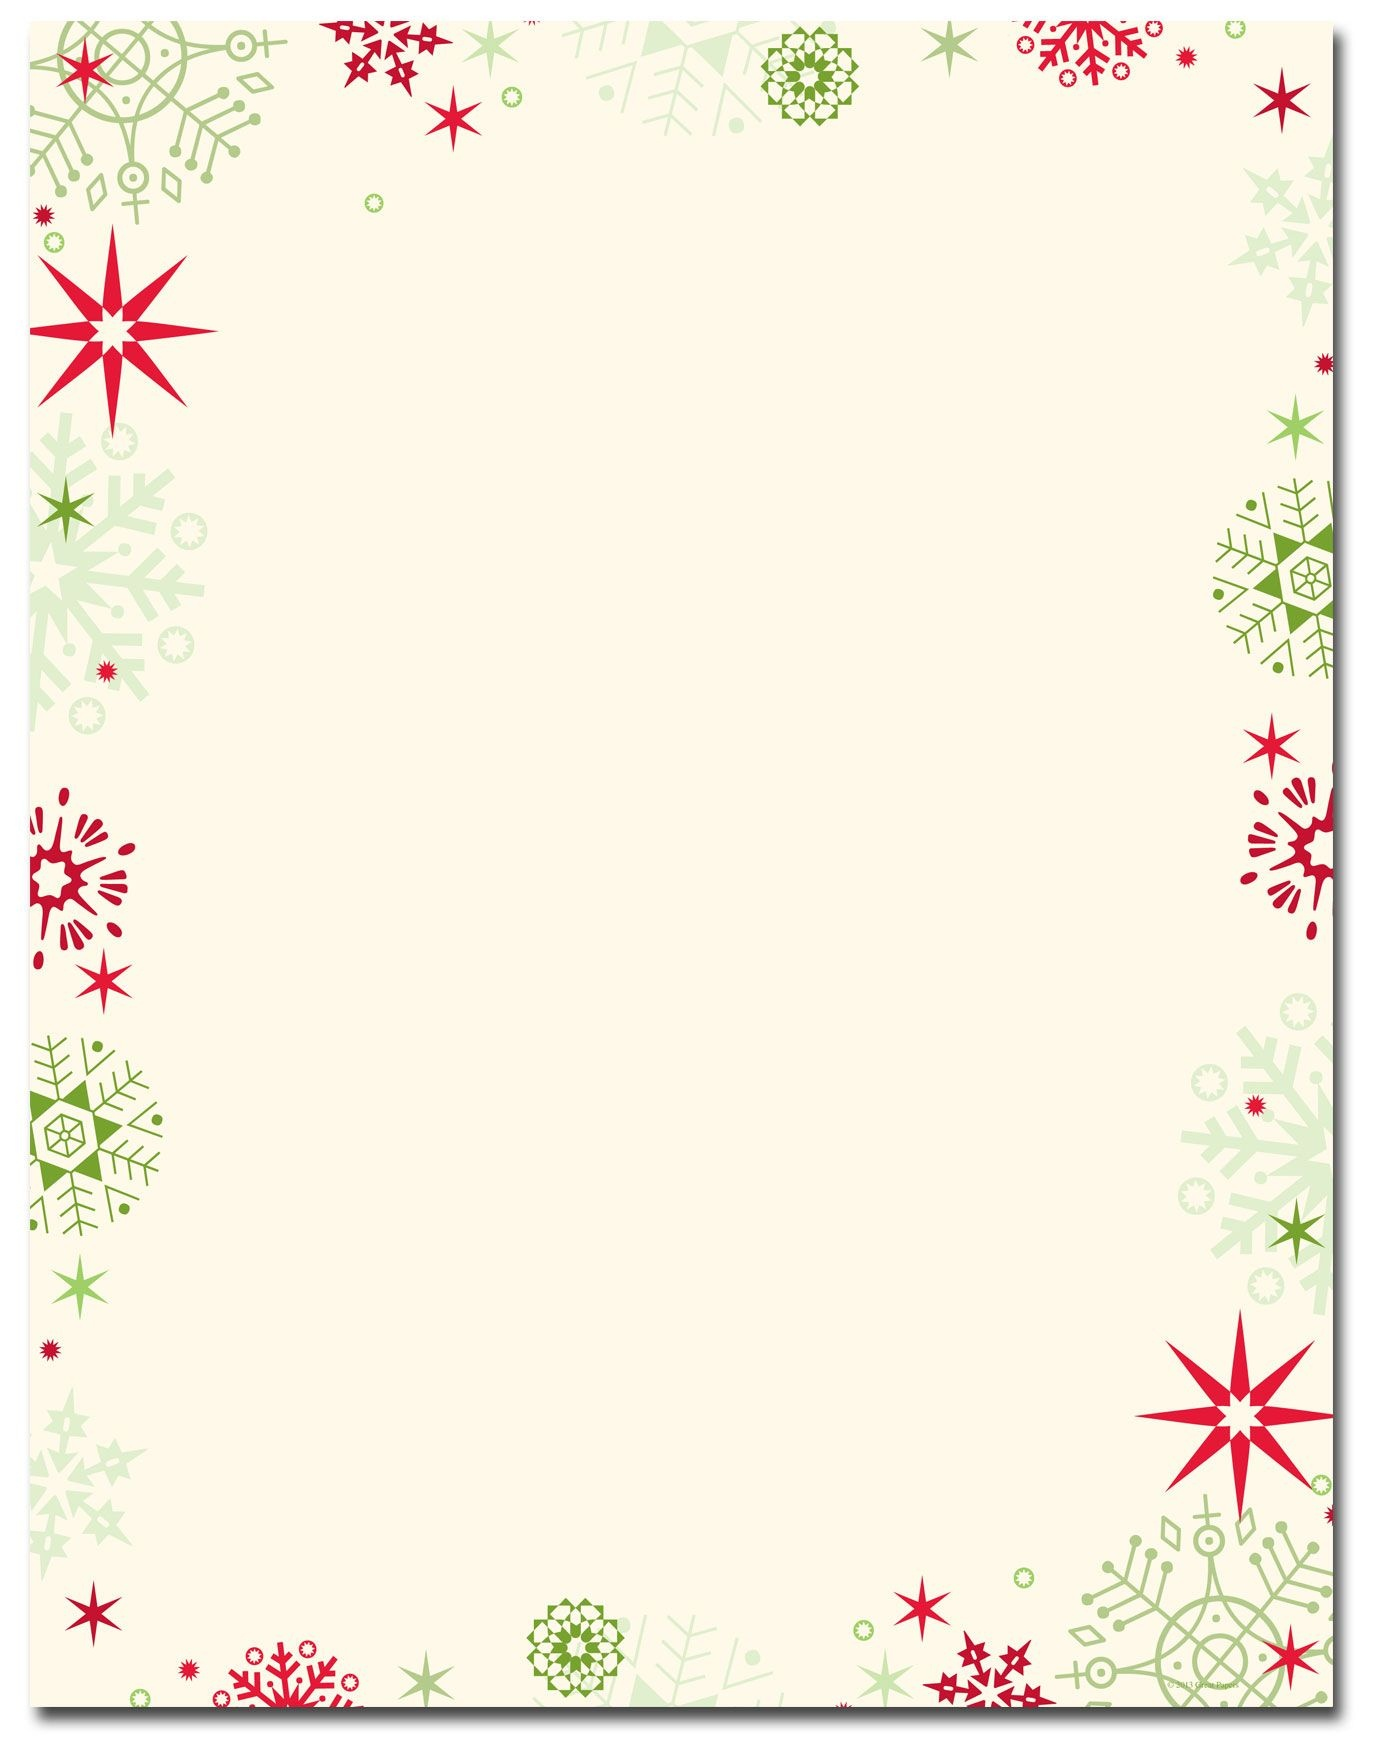 Red & Green Flakes Letterhead   Holiday Papers   Christmas - Free Printable Christmas Stationery Paper